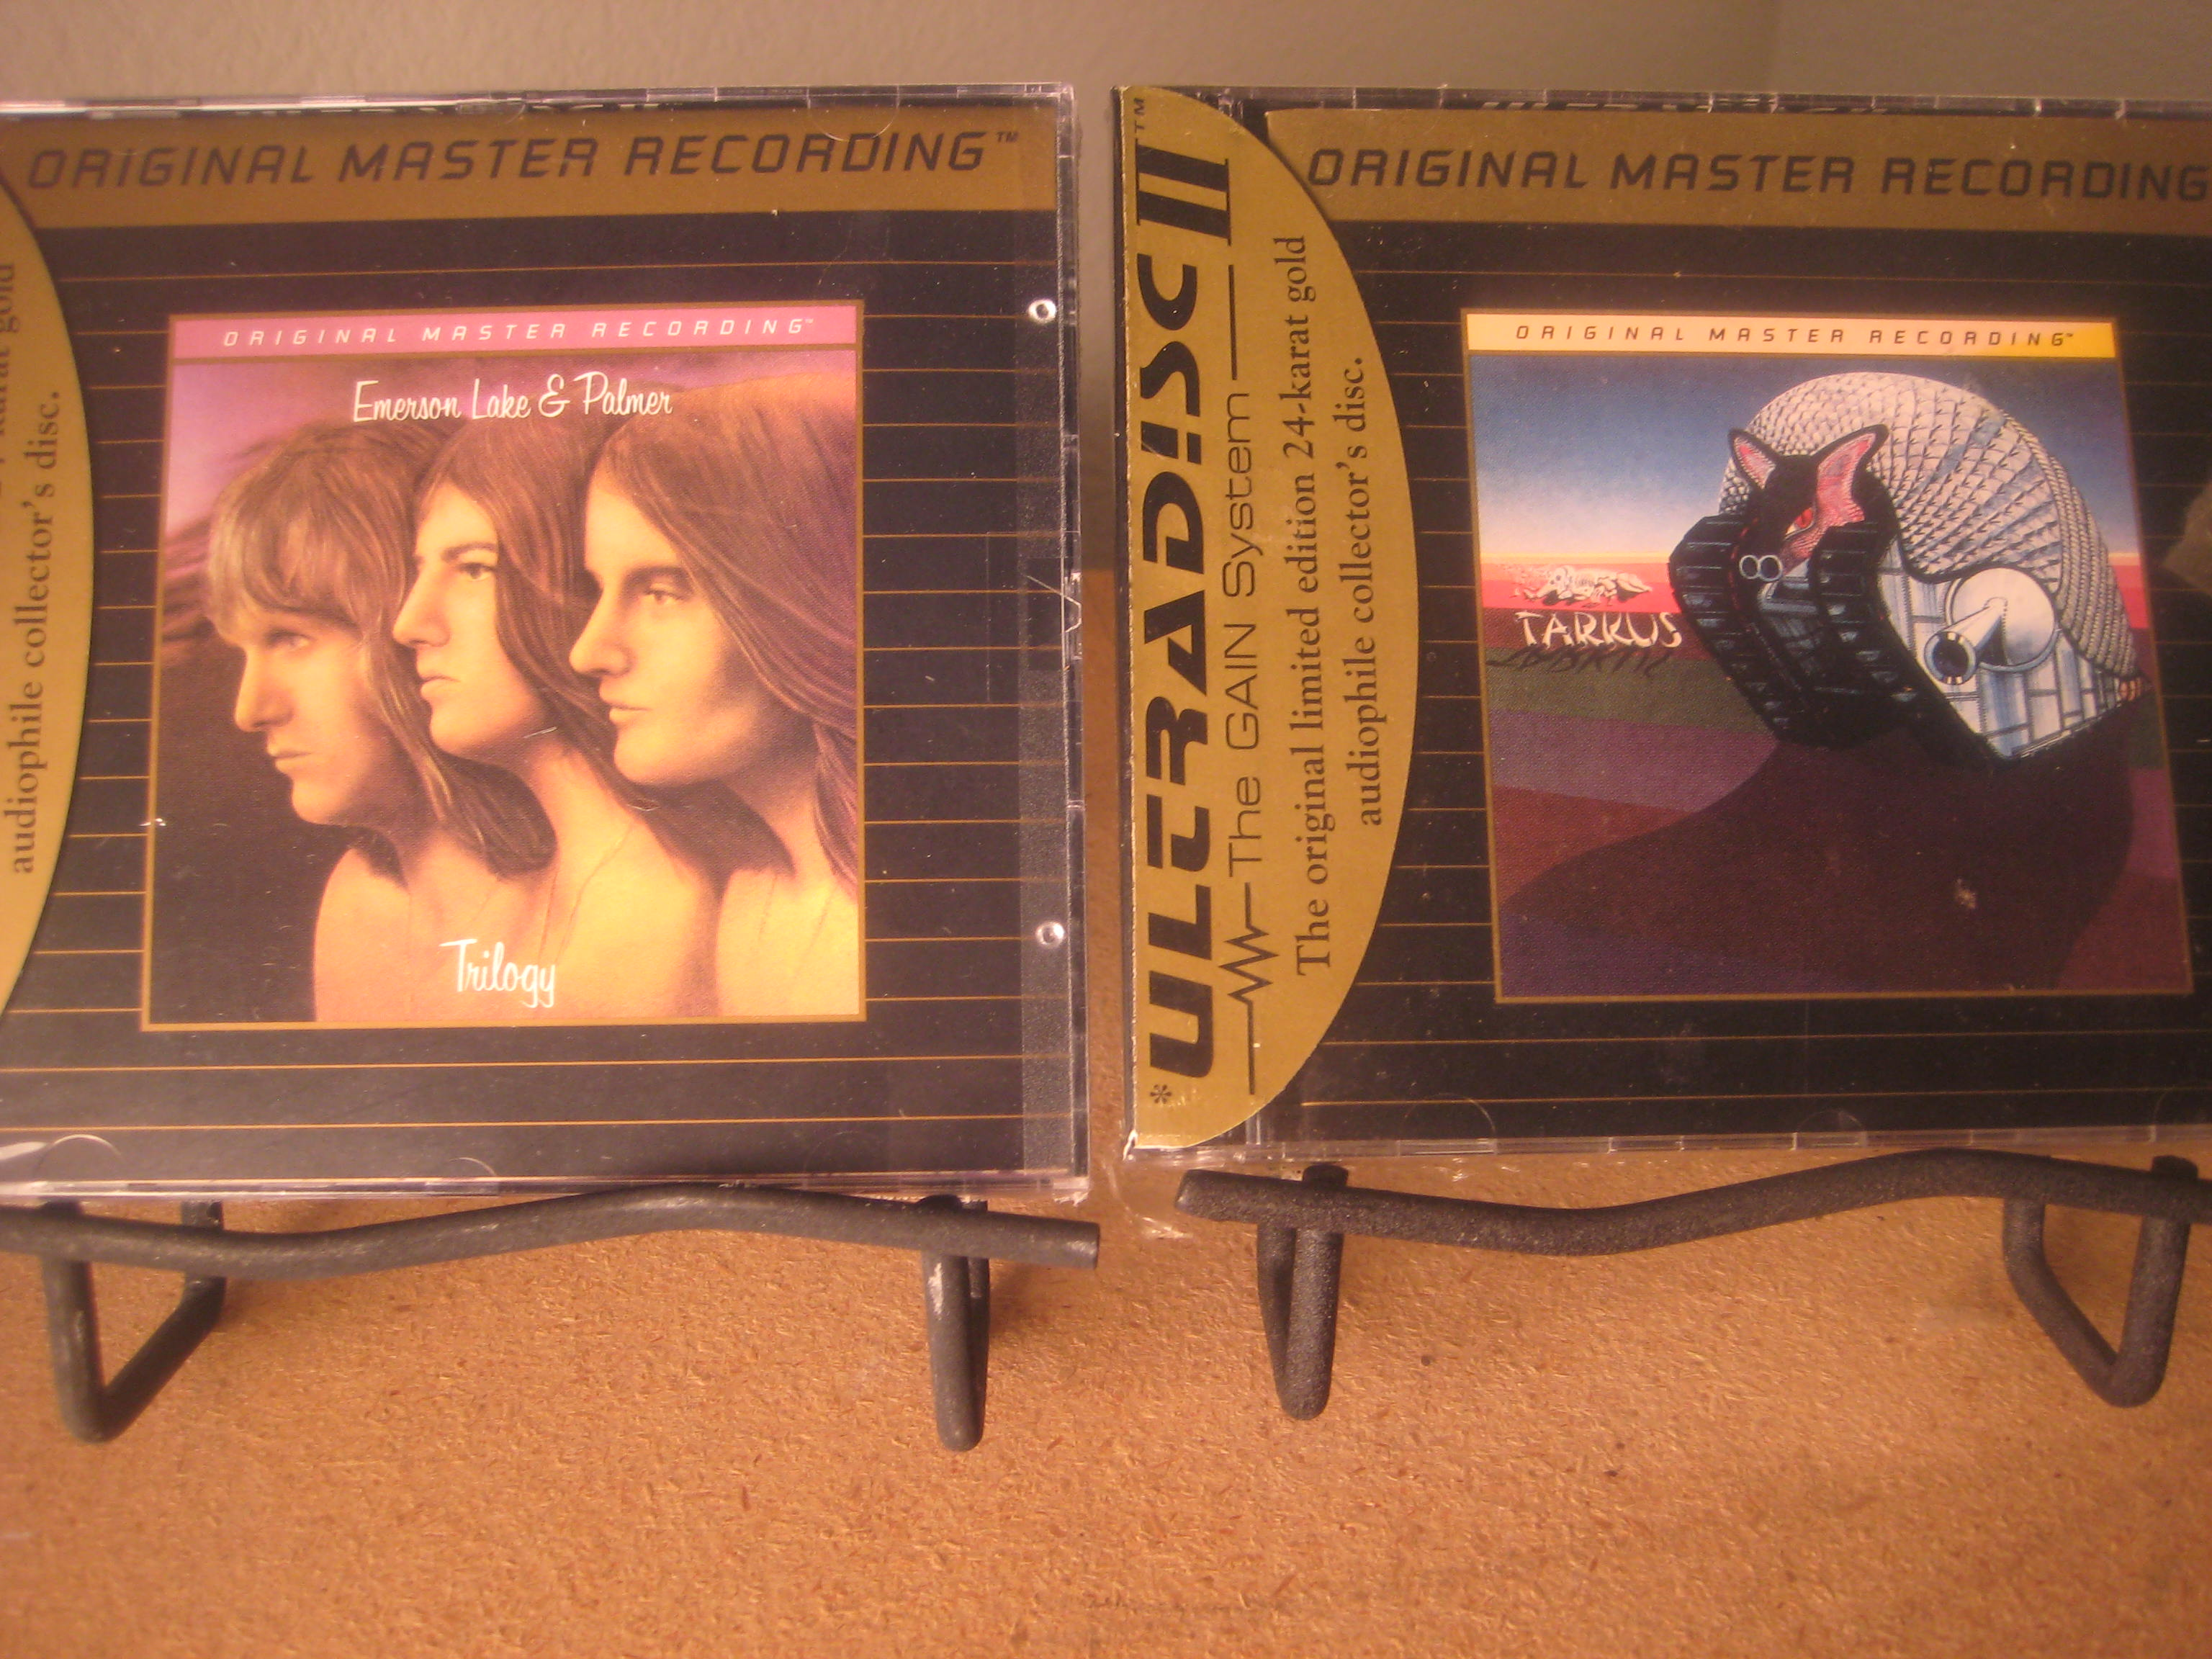 """Emerson Lake & Palmer, Trilogy & Tarkus - 2 Factory Sealed MFSL Gold CD"" - Product Image"